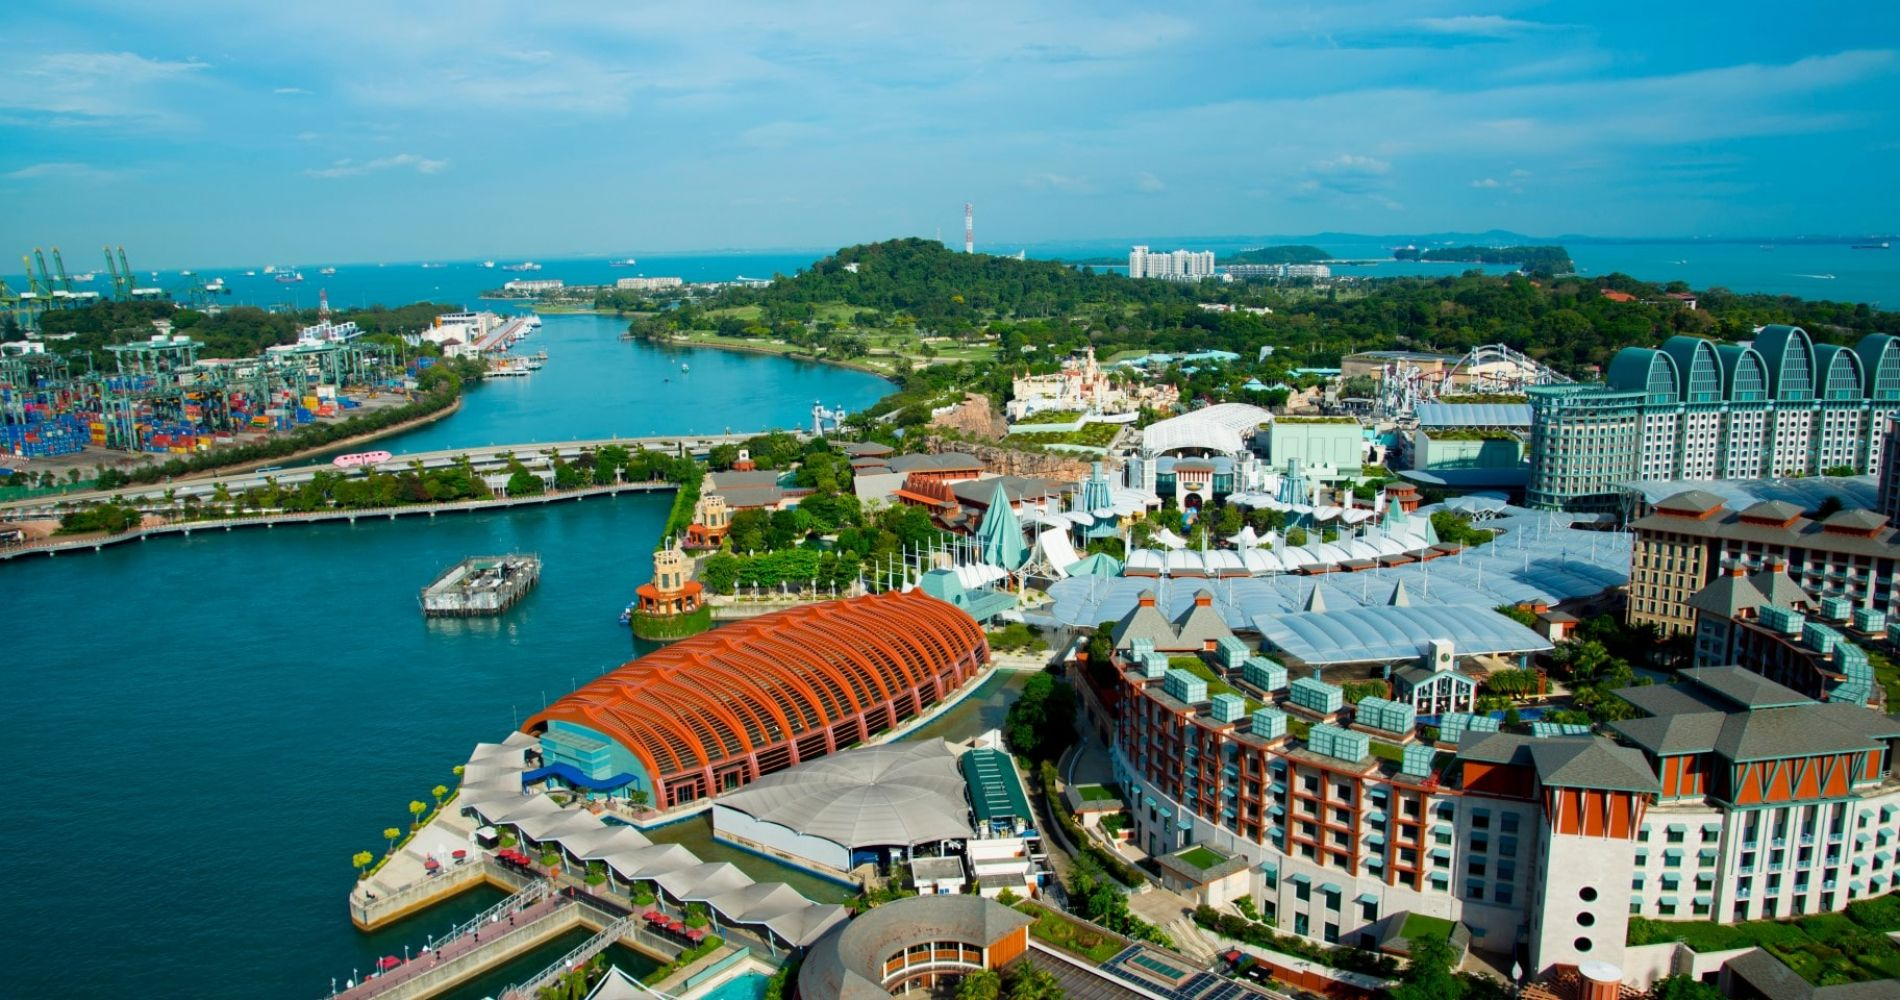 AJ Hackett Sentosa Giant Swing and Skybridge and other Singapore attractions